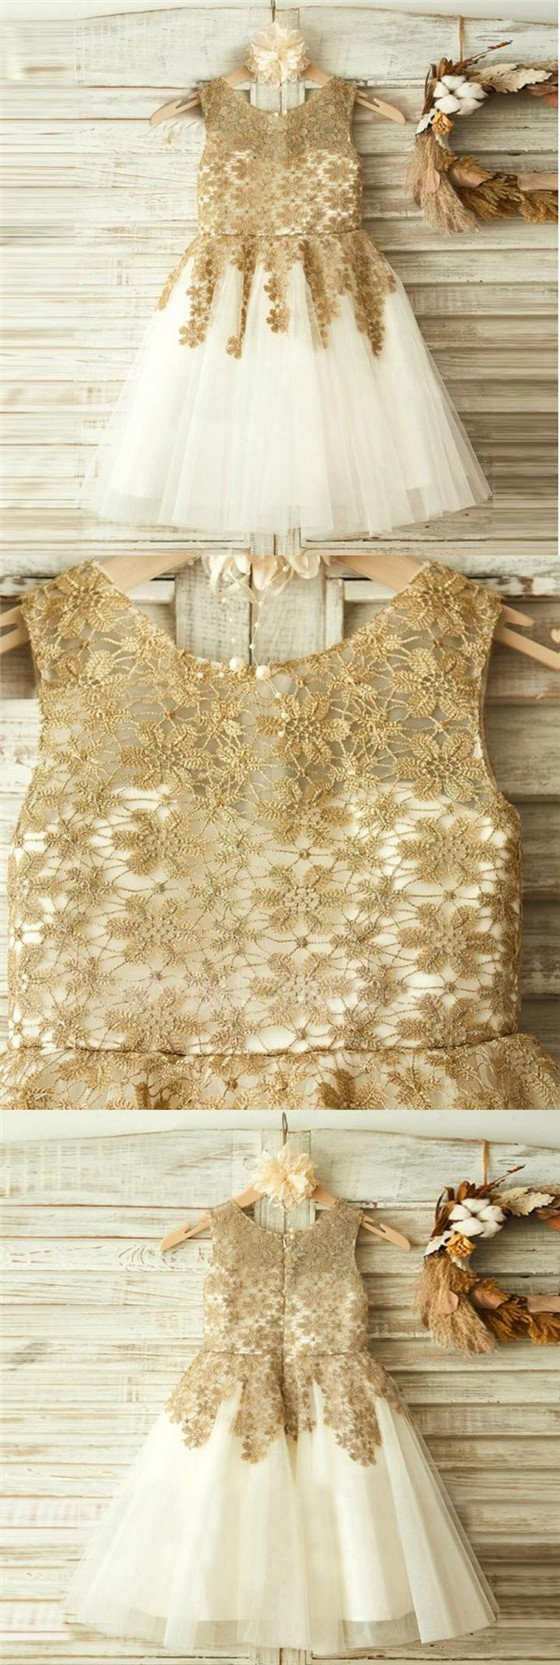 04a019c37 Gold Sparkly Flower Girl Dress – DACC